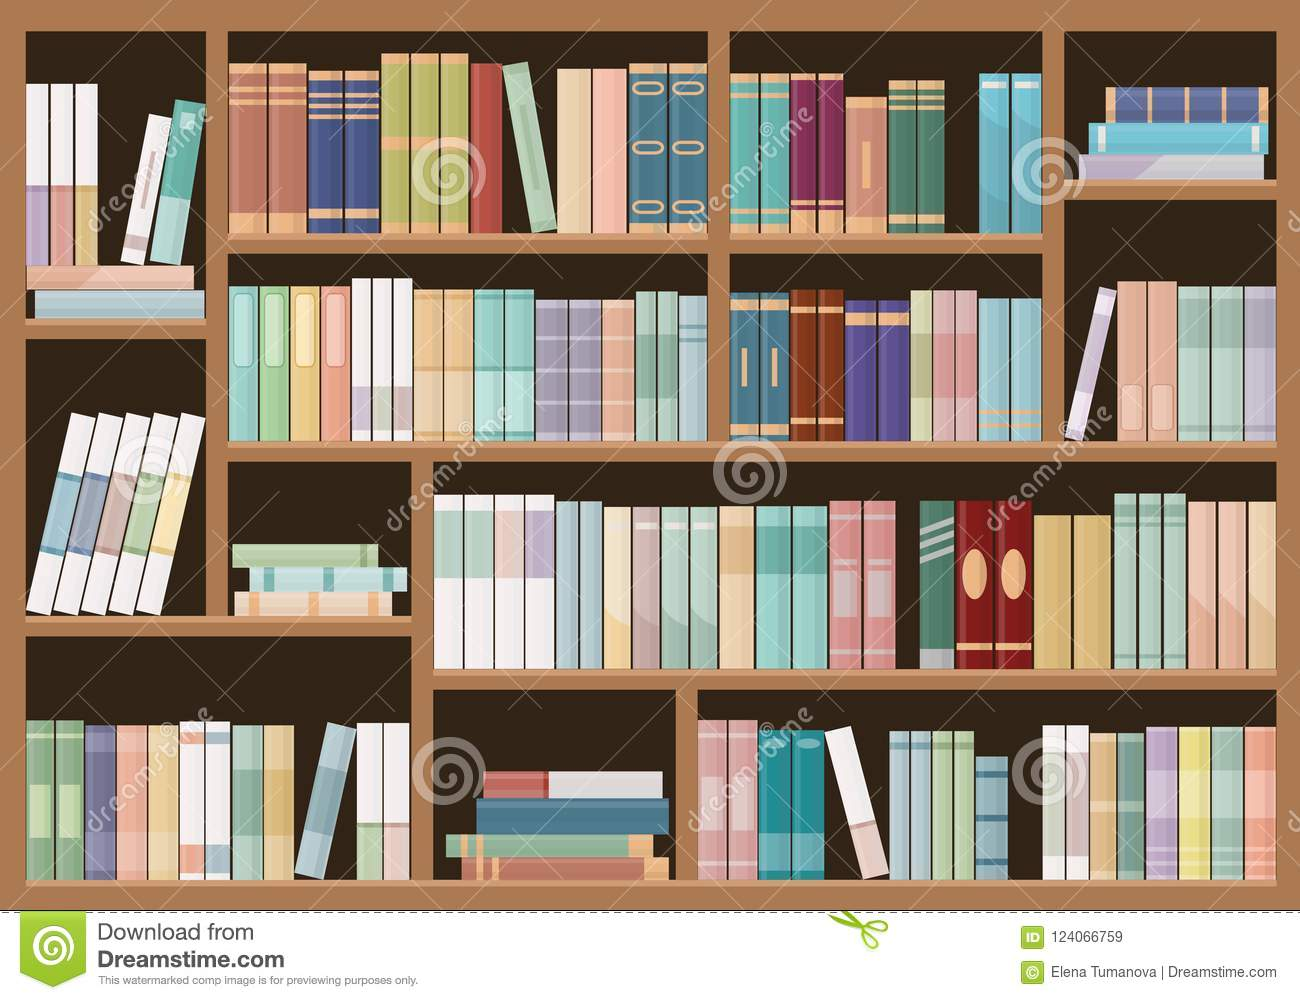 Bookshelves full of books. Education library and bookstore concept.